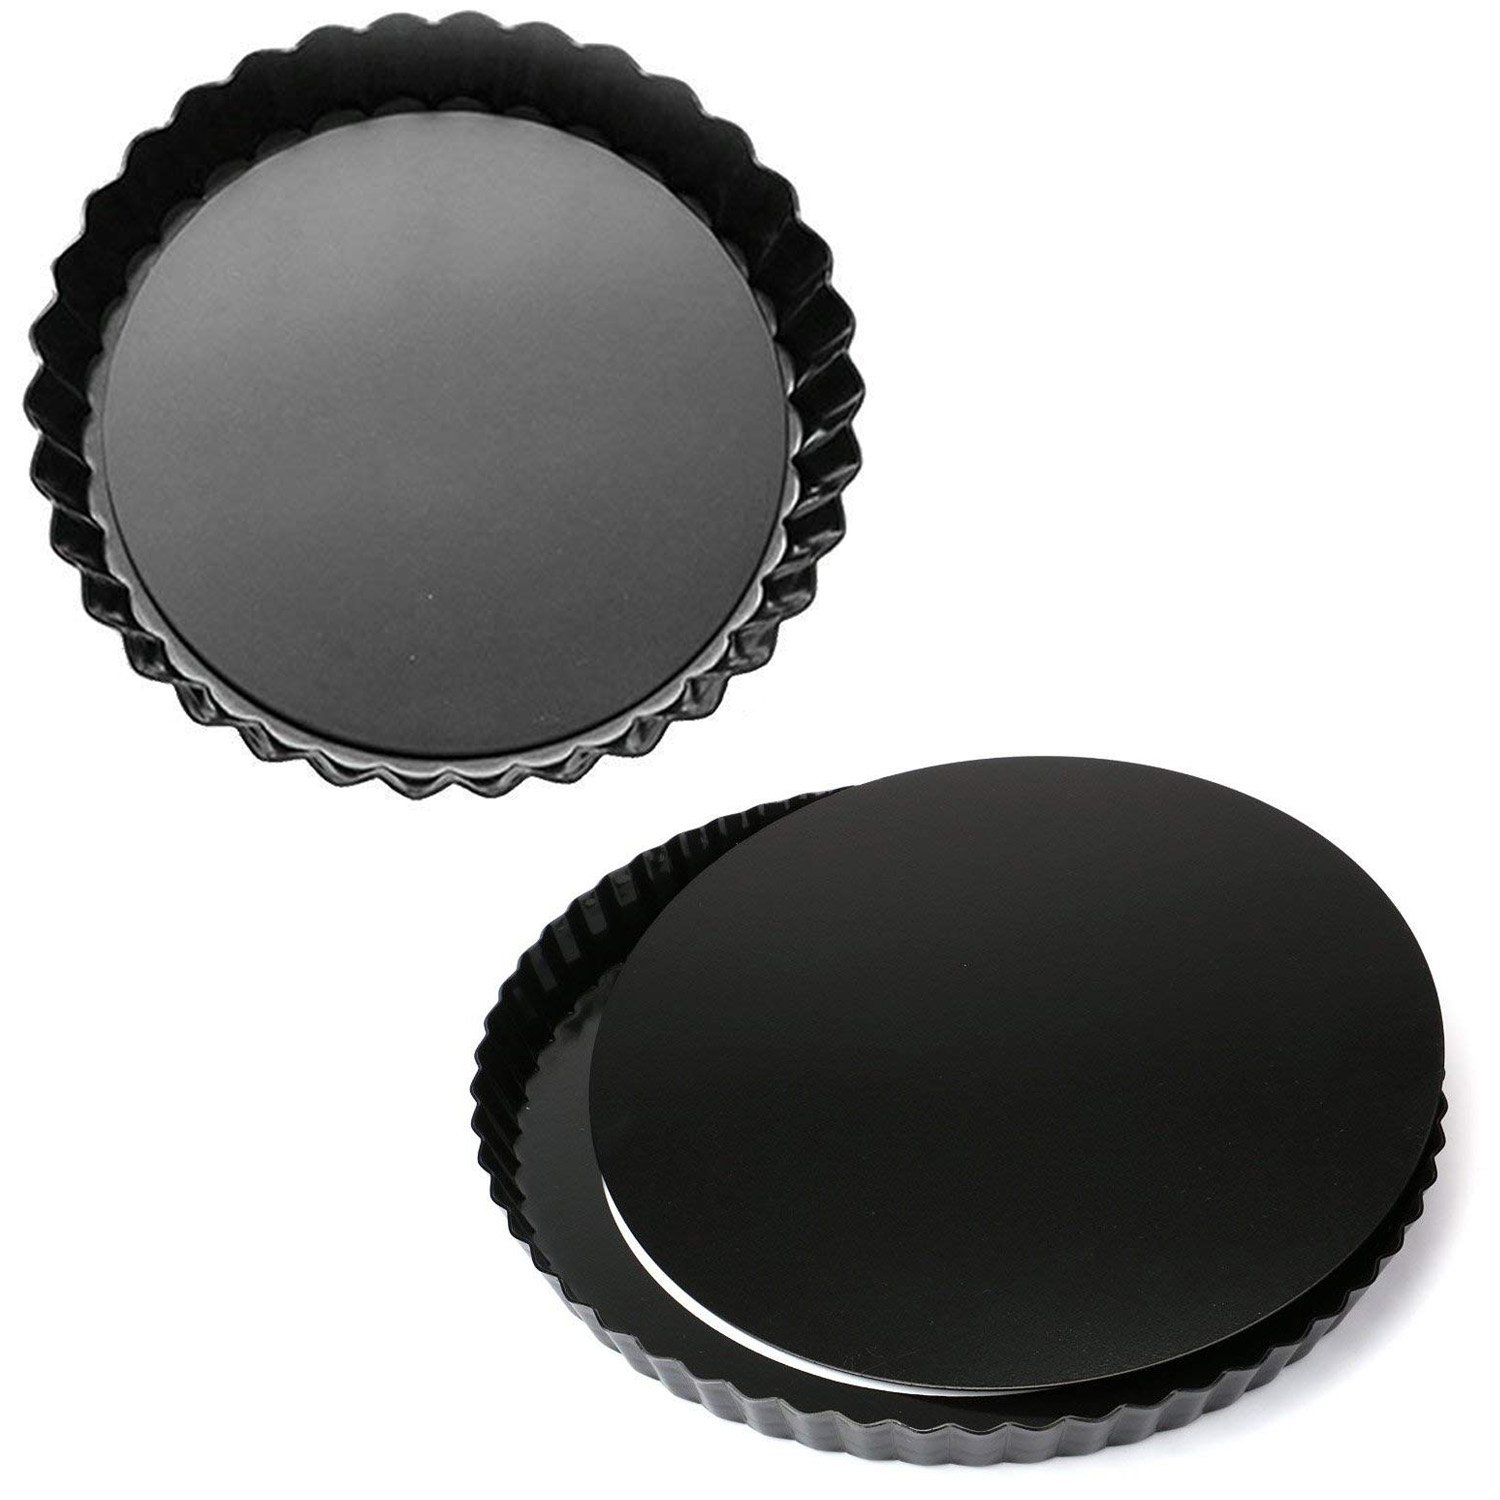 MJ Kitchen 2 Pack 11 Inch Removable Bottom Tart Pan, Quiche Pan, Pie Pan with Removable Base, Non-Stick Tart Pie Quiche Baking Dish (2)